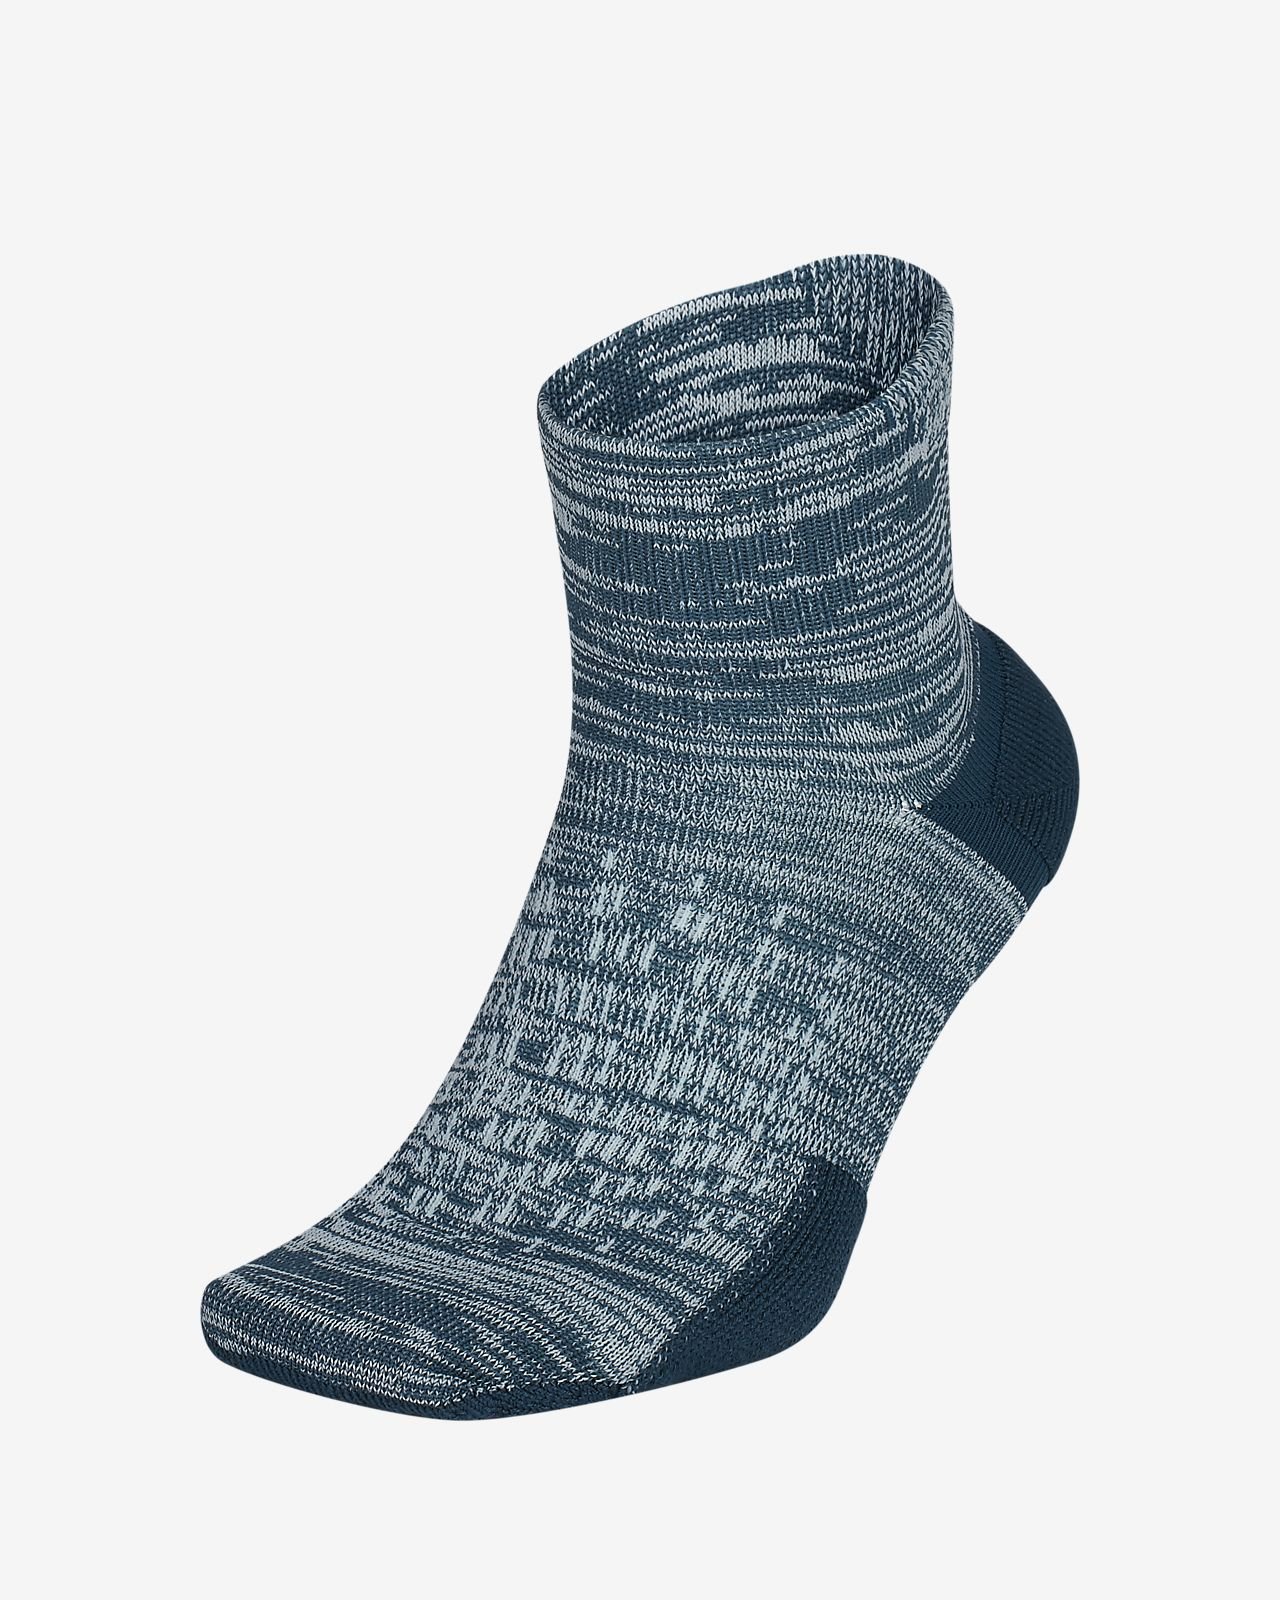 Nike Elite Cushioned Ankle Running Socks